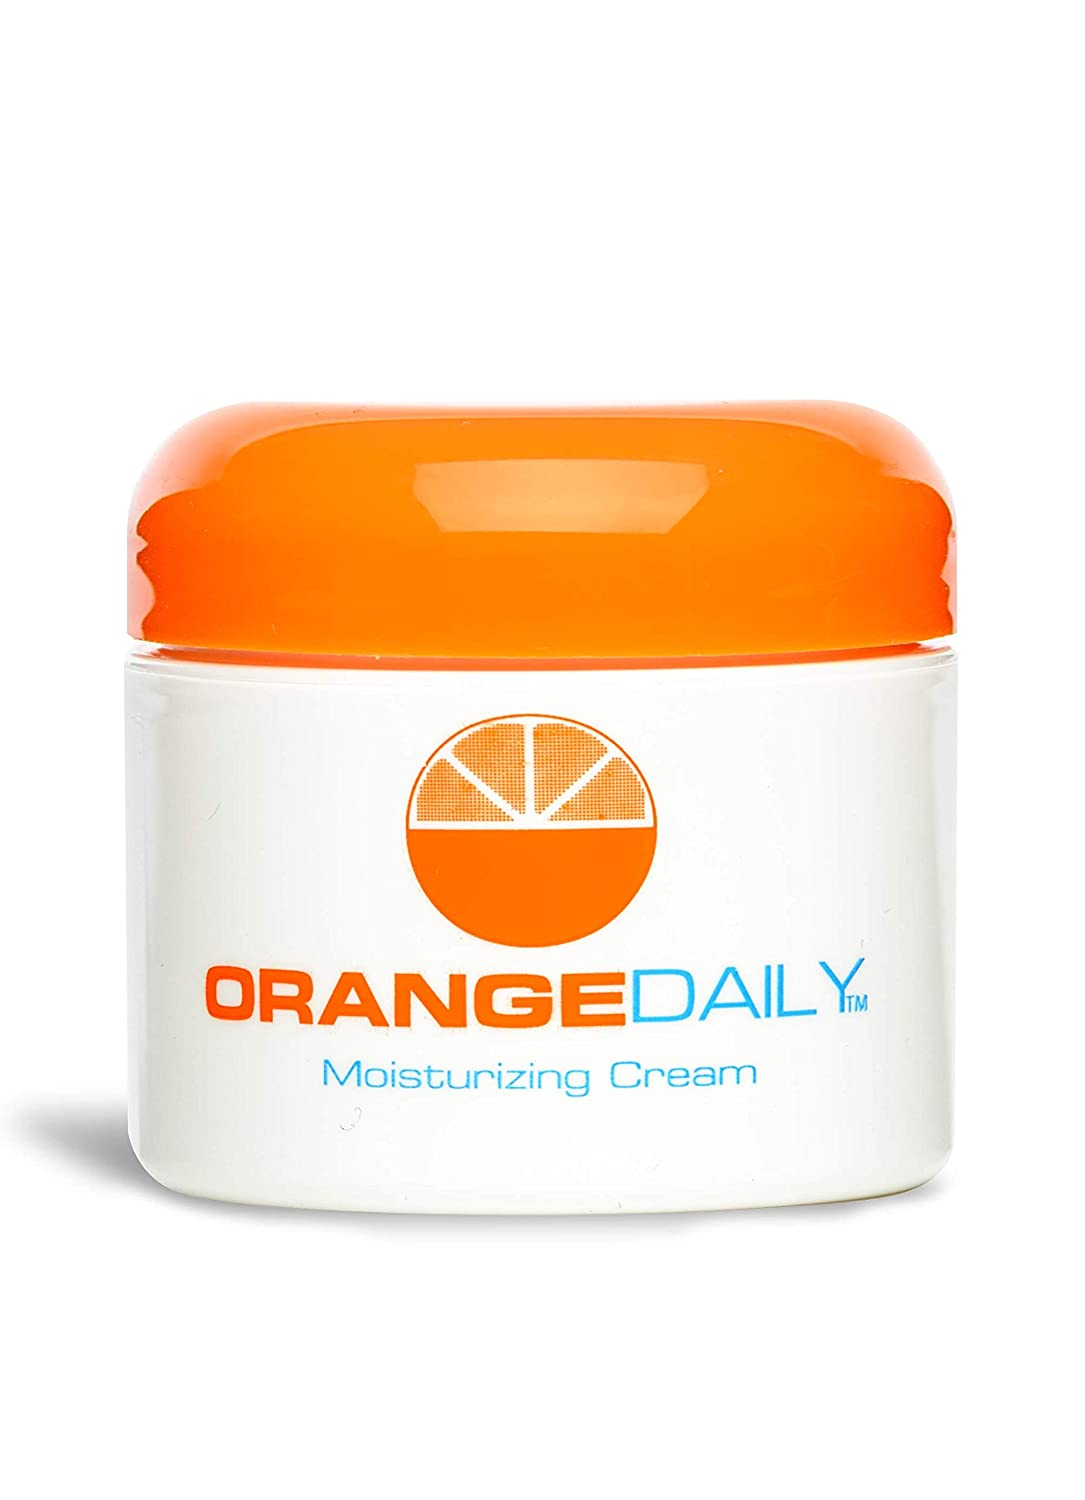 OrangeDaily Vitamin C Daily Facial Moisturizer to Help Fight Premature Aging Skin, 2 Ounce